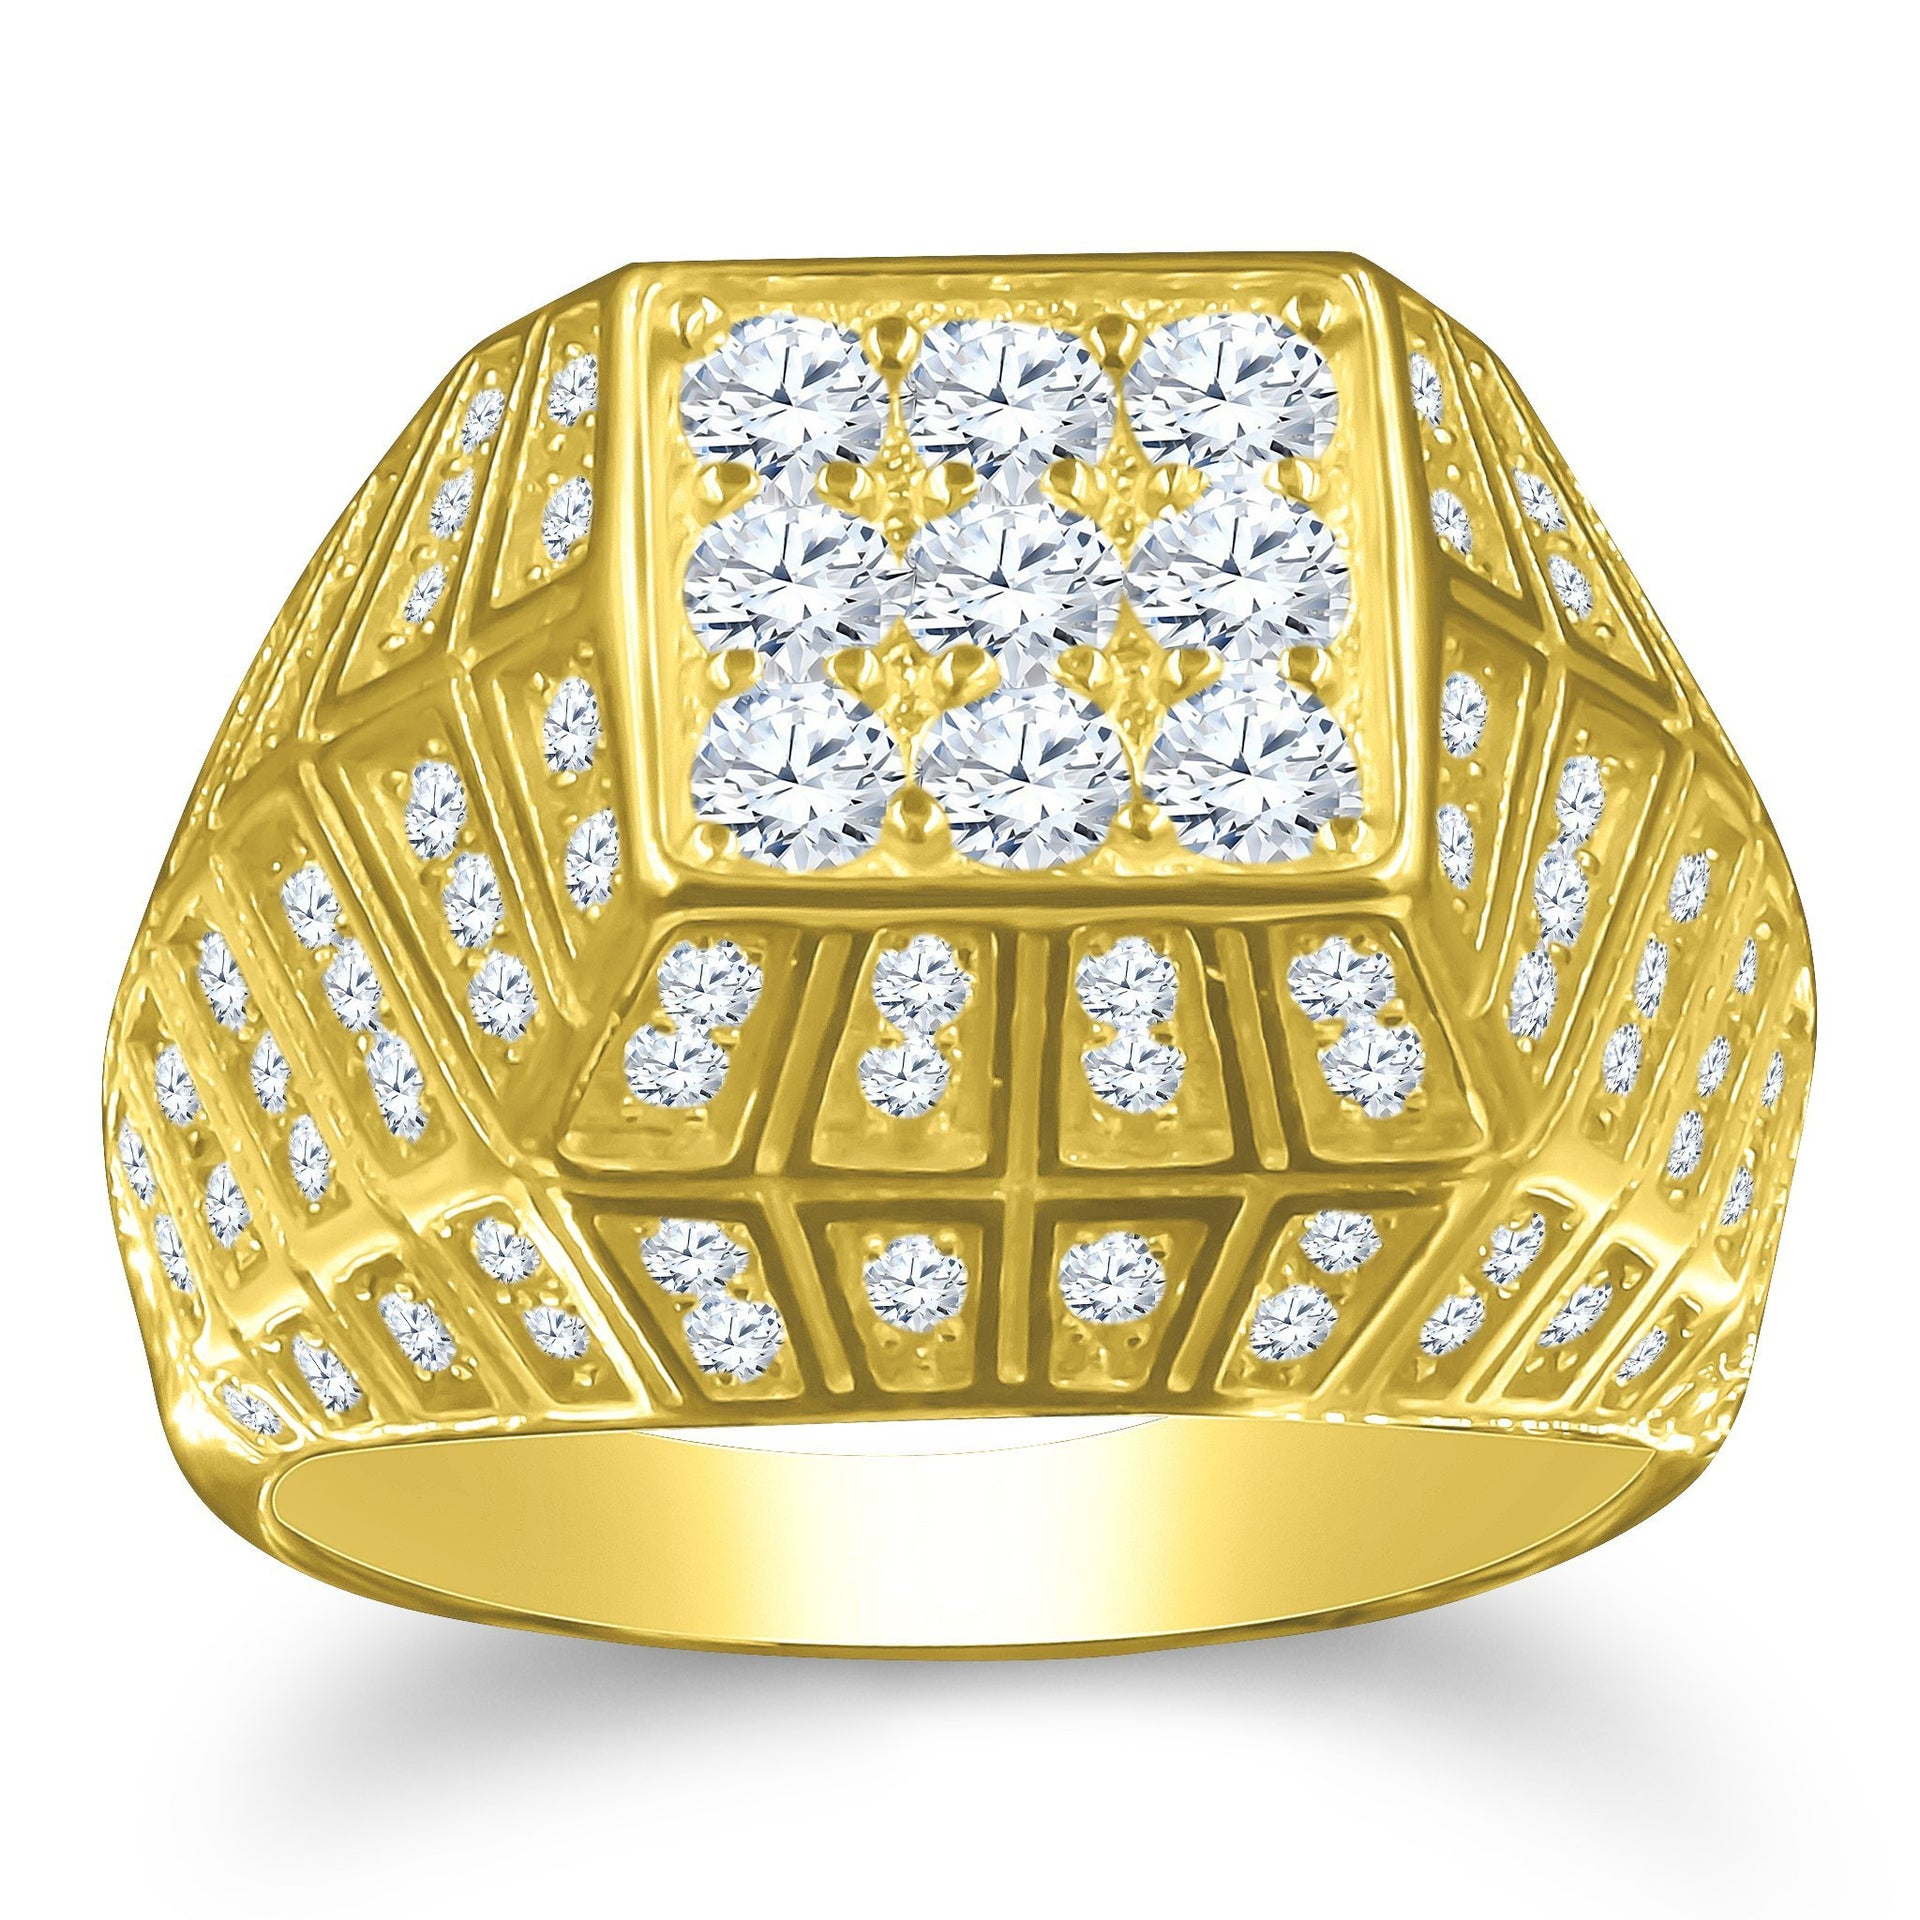 Mens Gold Bling Ring with Pure Silver Material